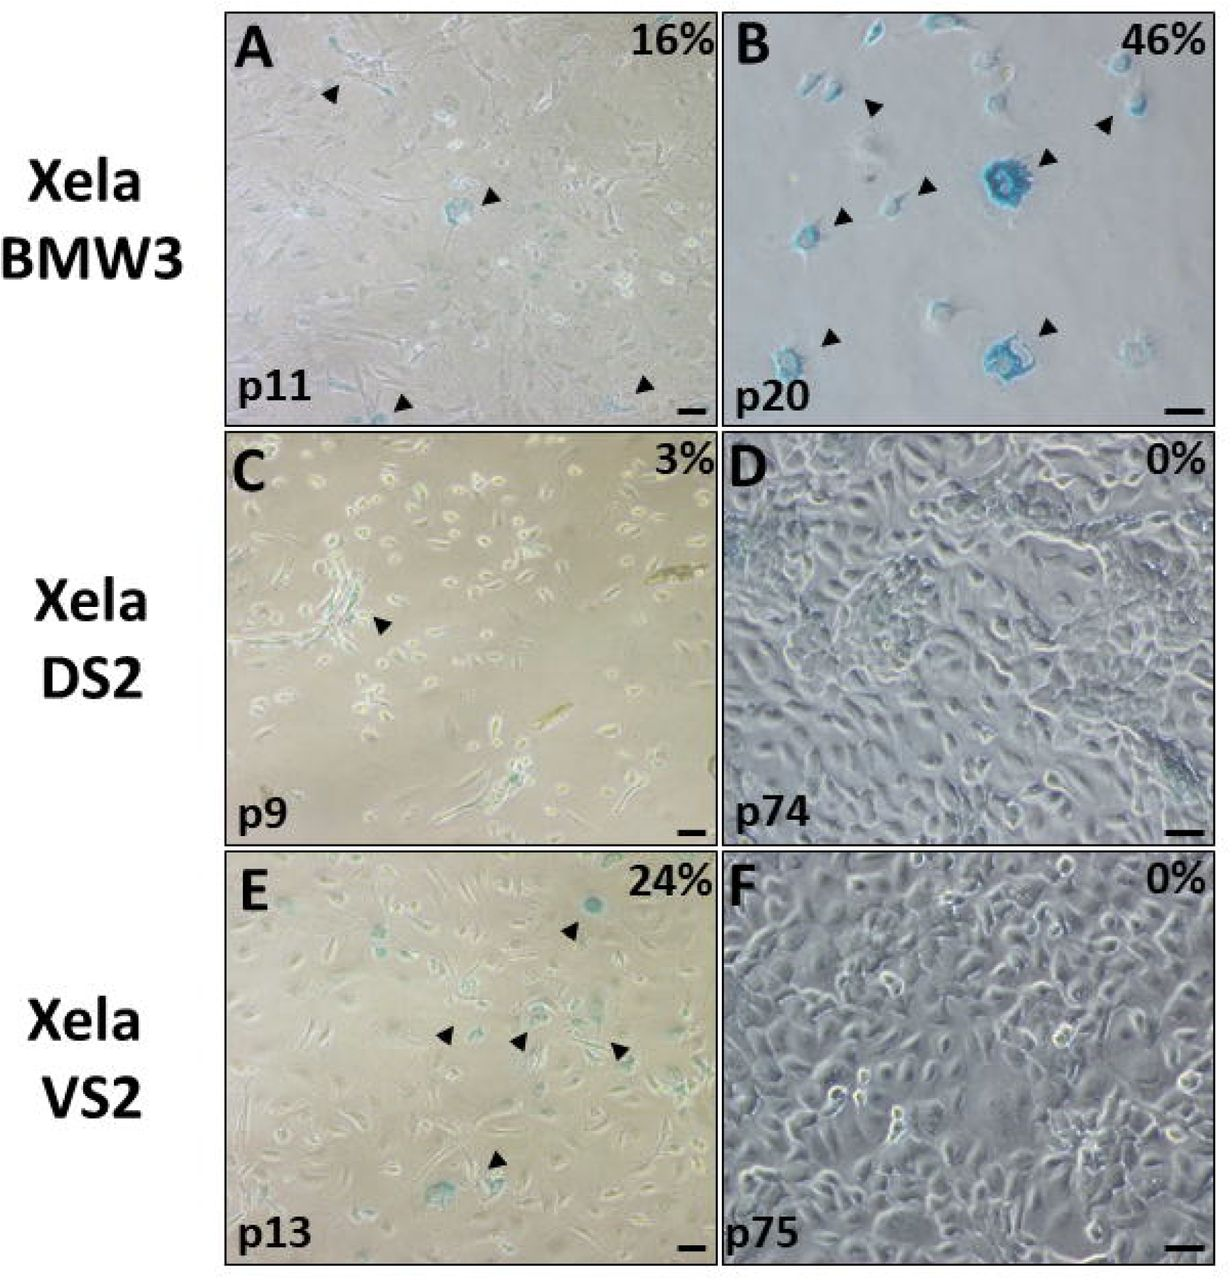 Senescence associated β-galactosidase activity of Xela DS2 and Xela VS2 cells from early and established cultures. Xela DS2 and Xela VS2 cells were tested for senescence associated β-galactosidase activity appear blue. Photomicrographs of Xela BMW3 cells at passage 11 (A), Xela DS2 cells at passage 9 (C), Xela VS2 cells at passage 13 (E), Xela BMW3 cells at passage 20 (B), Xela DS2 cells at passage 74 (D), and Xela VS2 cells at passage 75 (F). Xela BMW3 cells were used as a positive control for β-galactosidase activity. The percentages of β-galactosidase positive cells are indicated in the top-right hand corner of each image. Scale bars represent a distance of 50 μM.